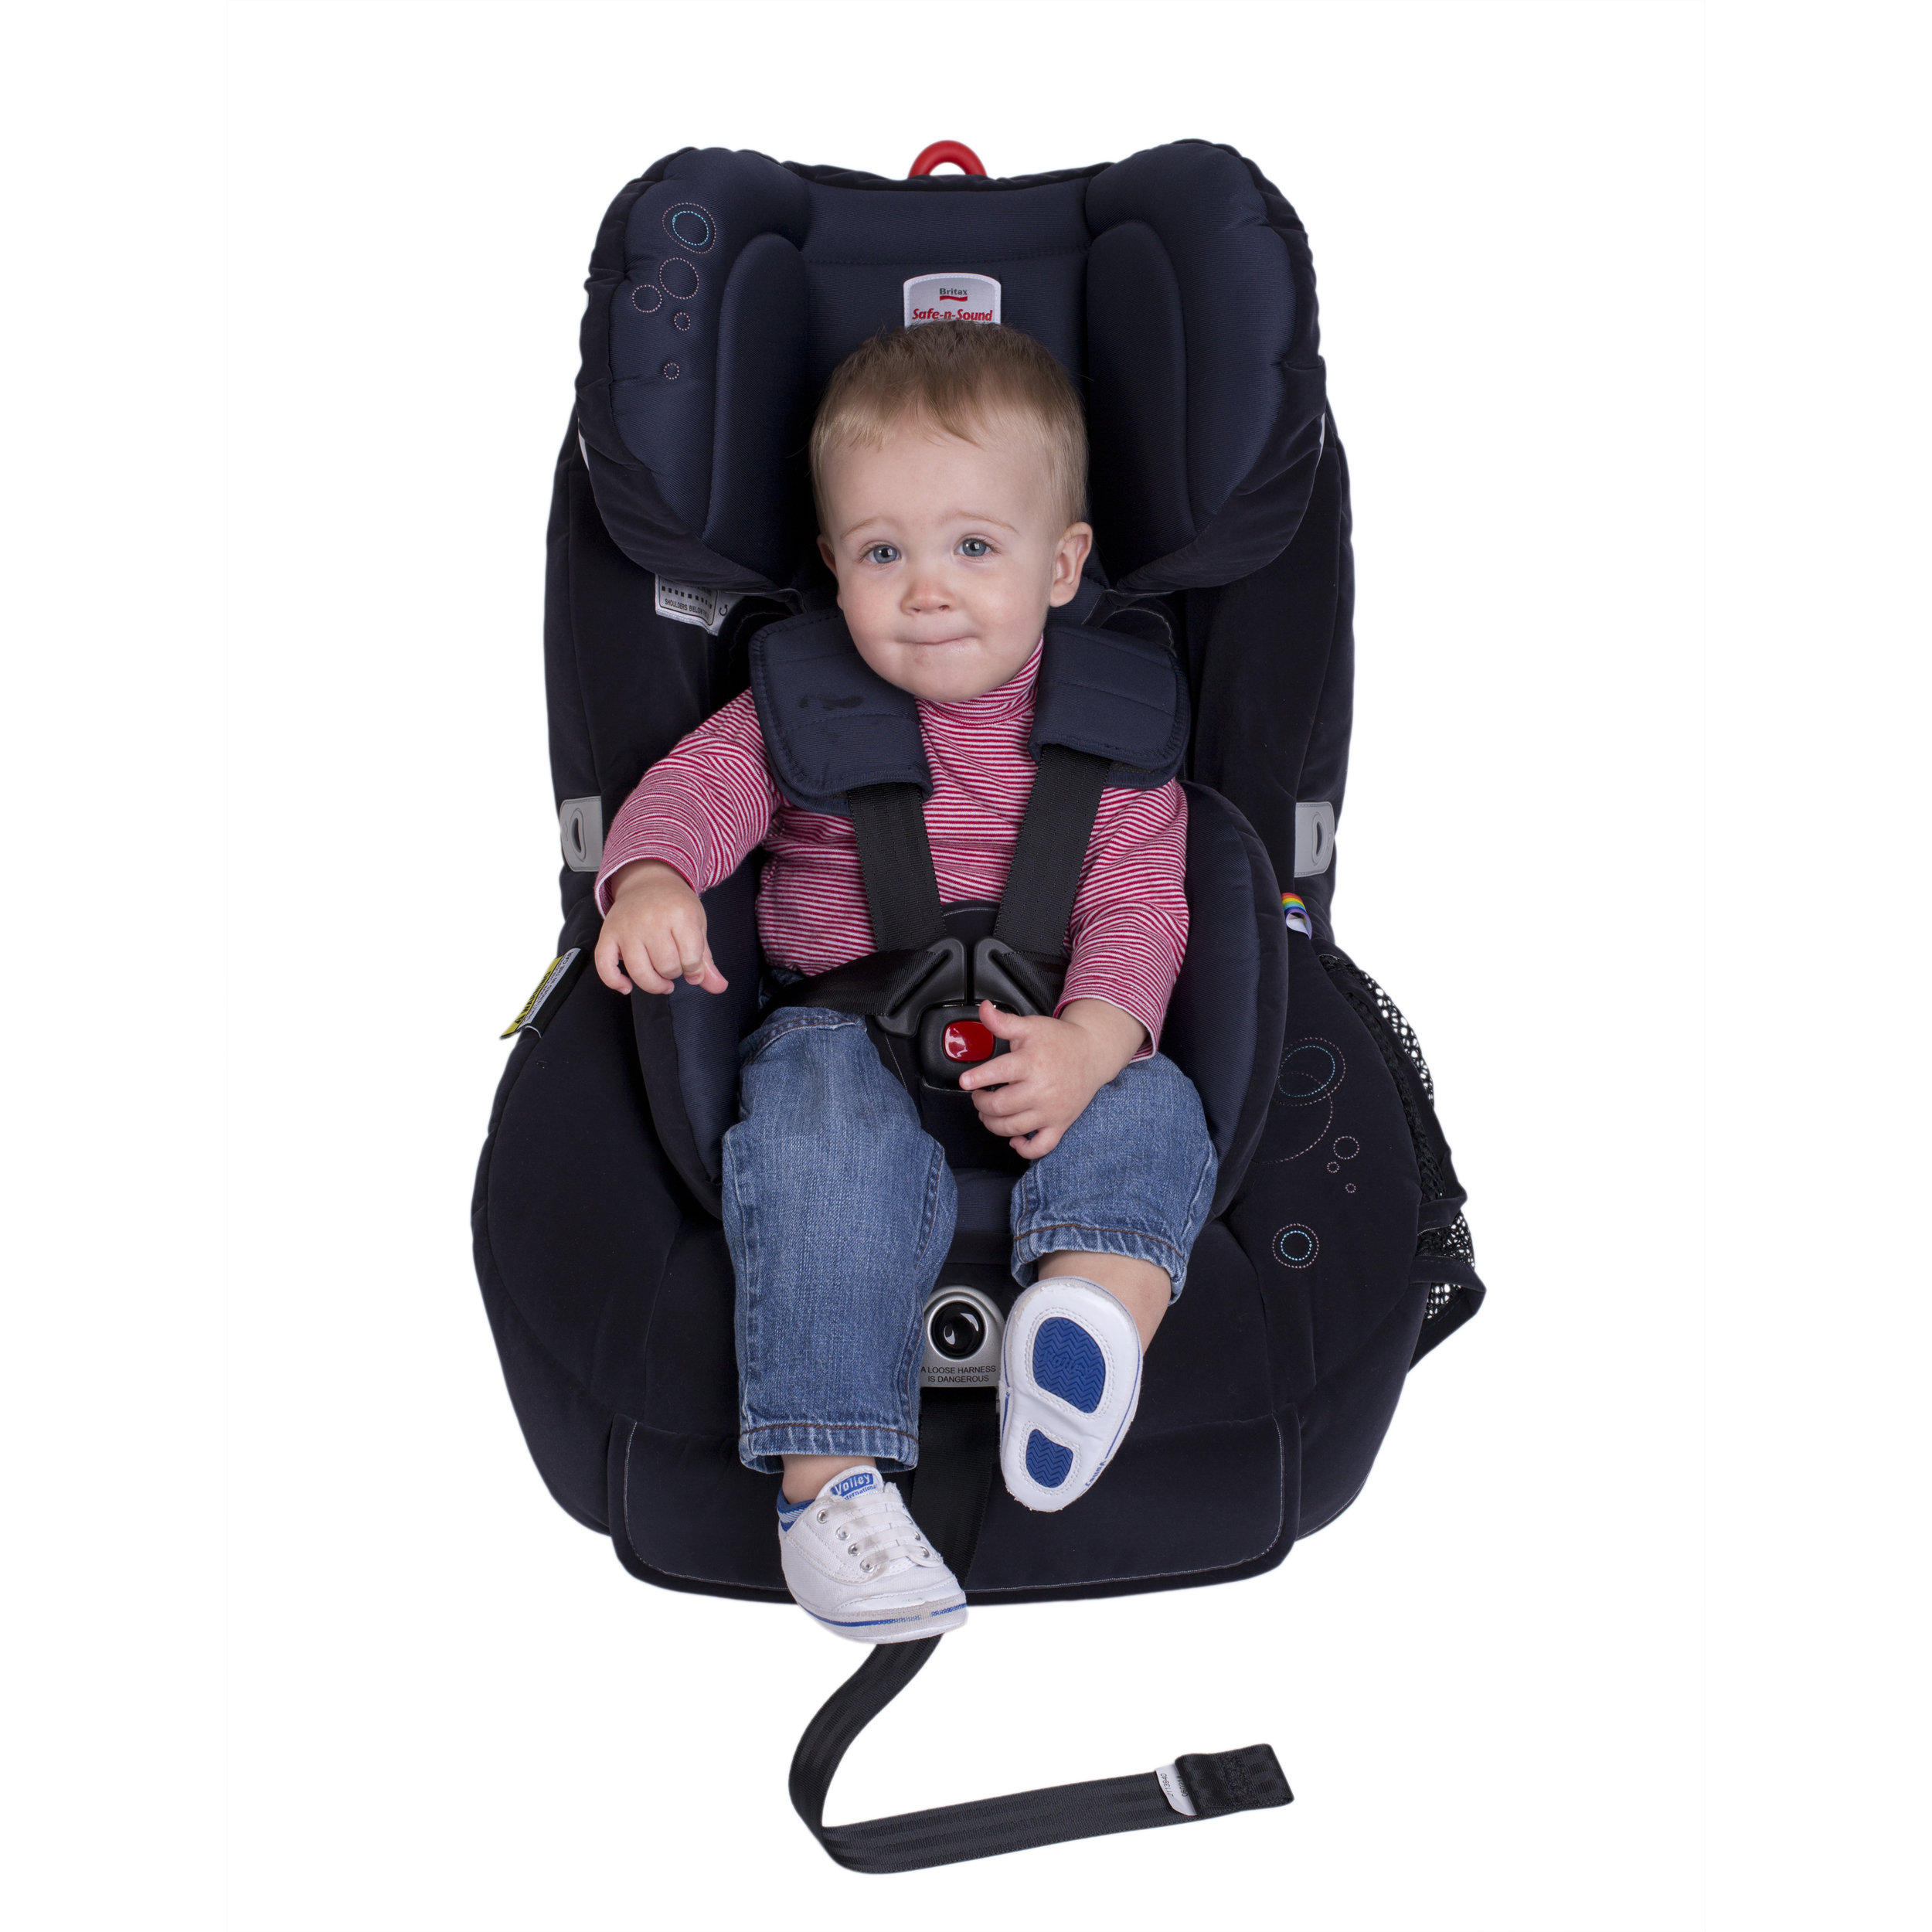 ask the child car restraint experts at kidsafe qld - Fittings, checks, hires and sales all available at Kidsafe Qld